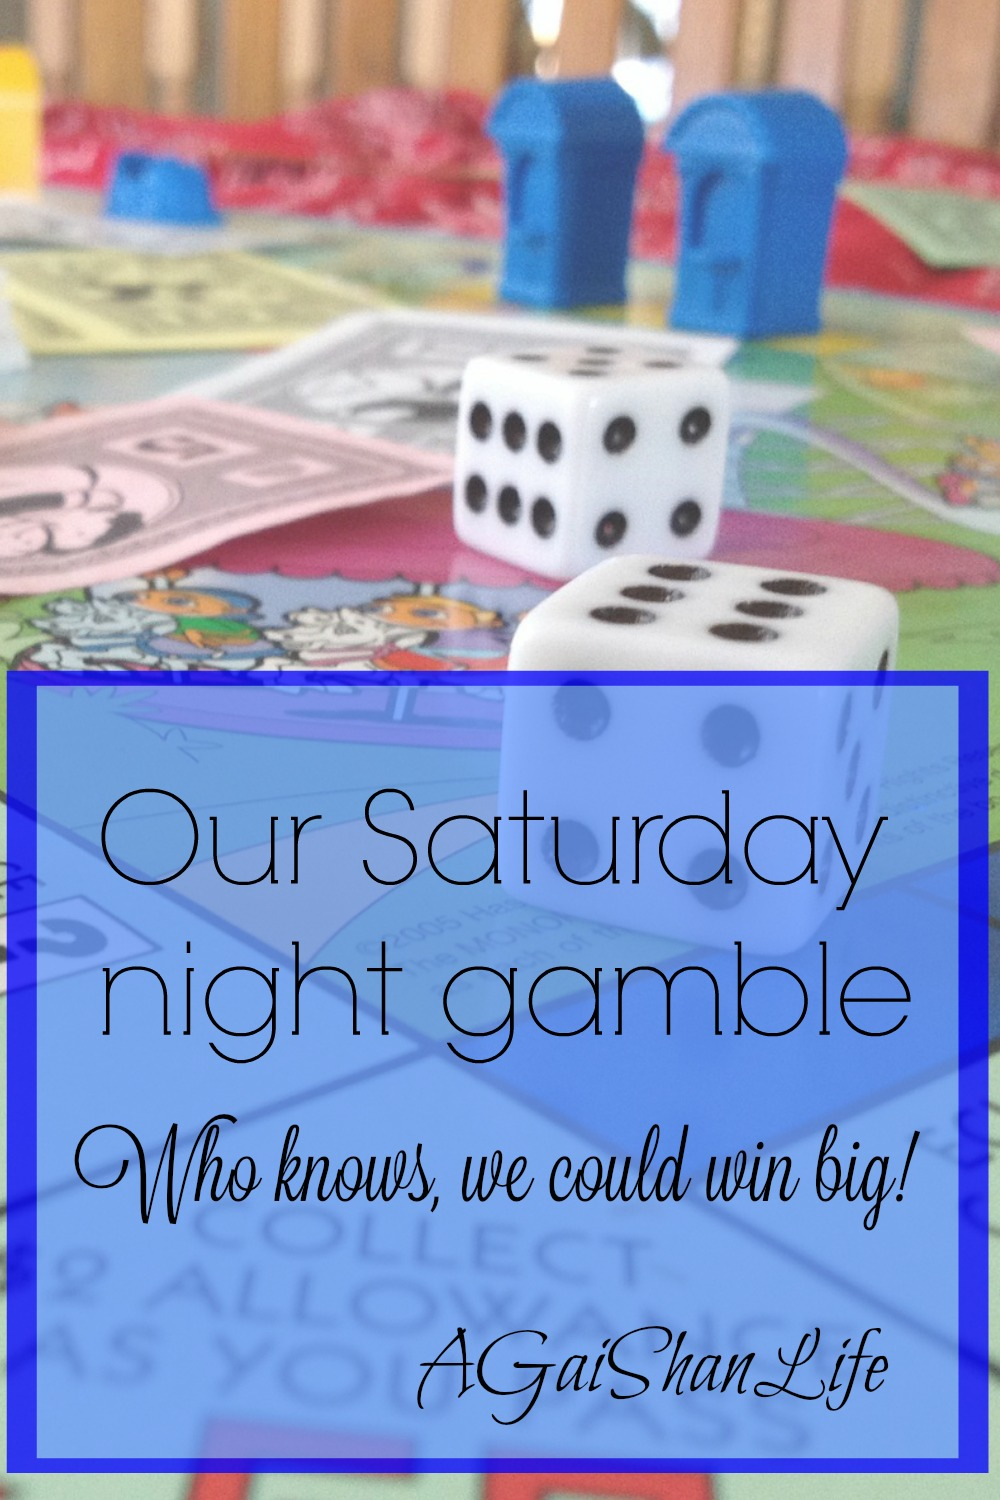 Our Saturday night gambling: Can we win anything awesome from this shop & Monopoly game?